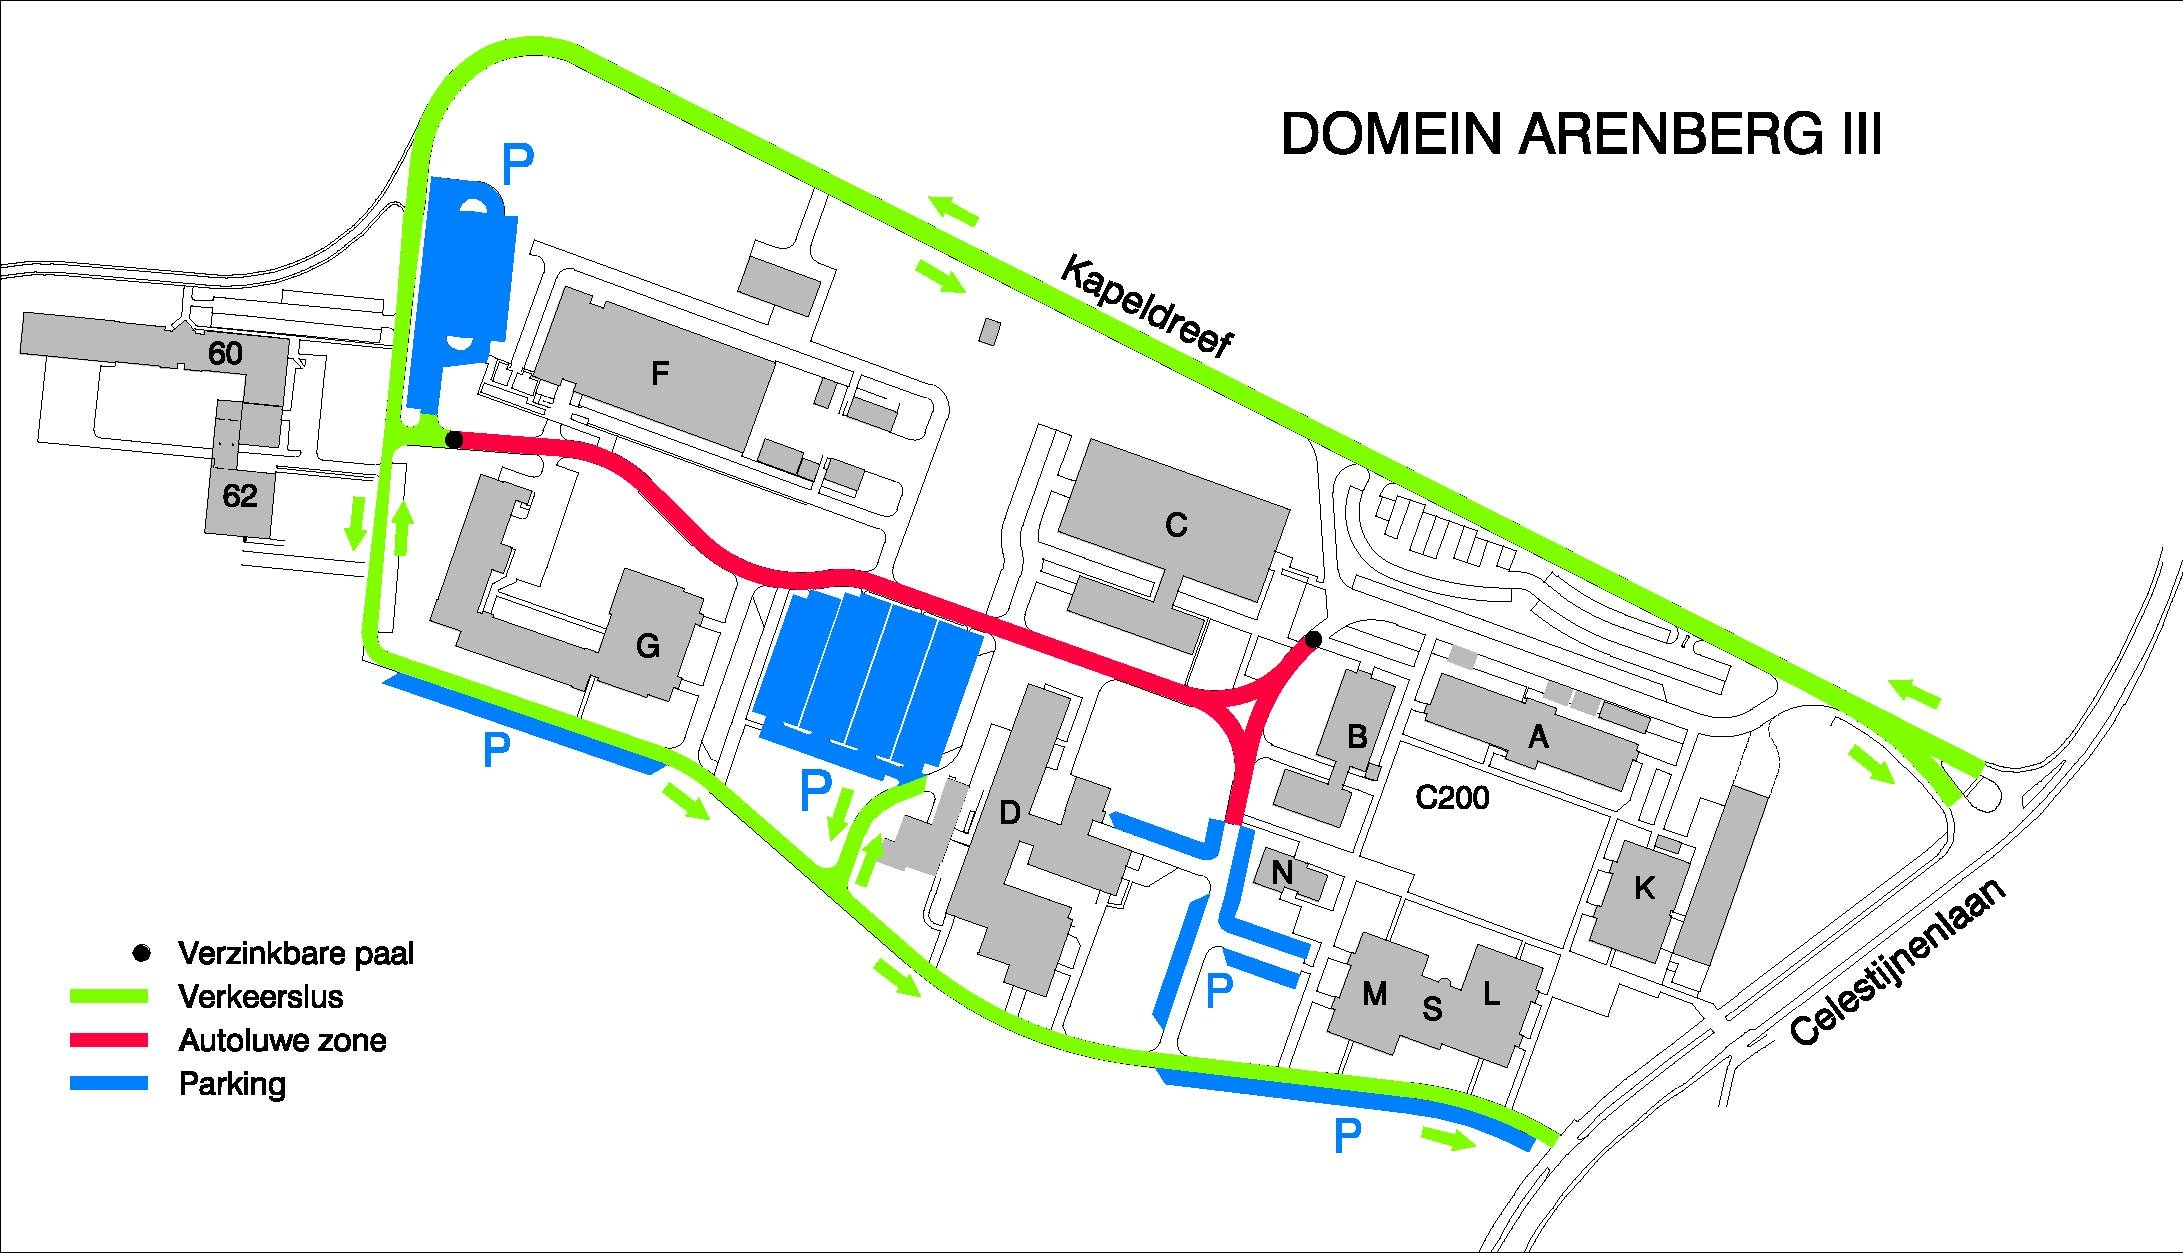 ku leuven campus map How To Get To The Department Department Of Mathematics ku leuven campus map